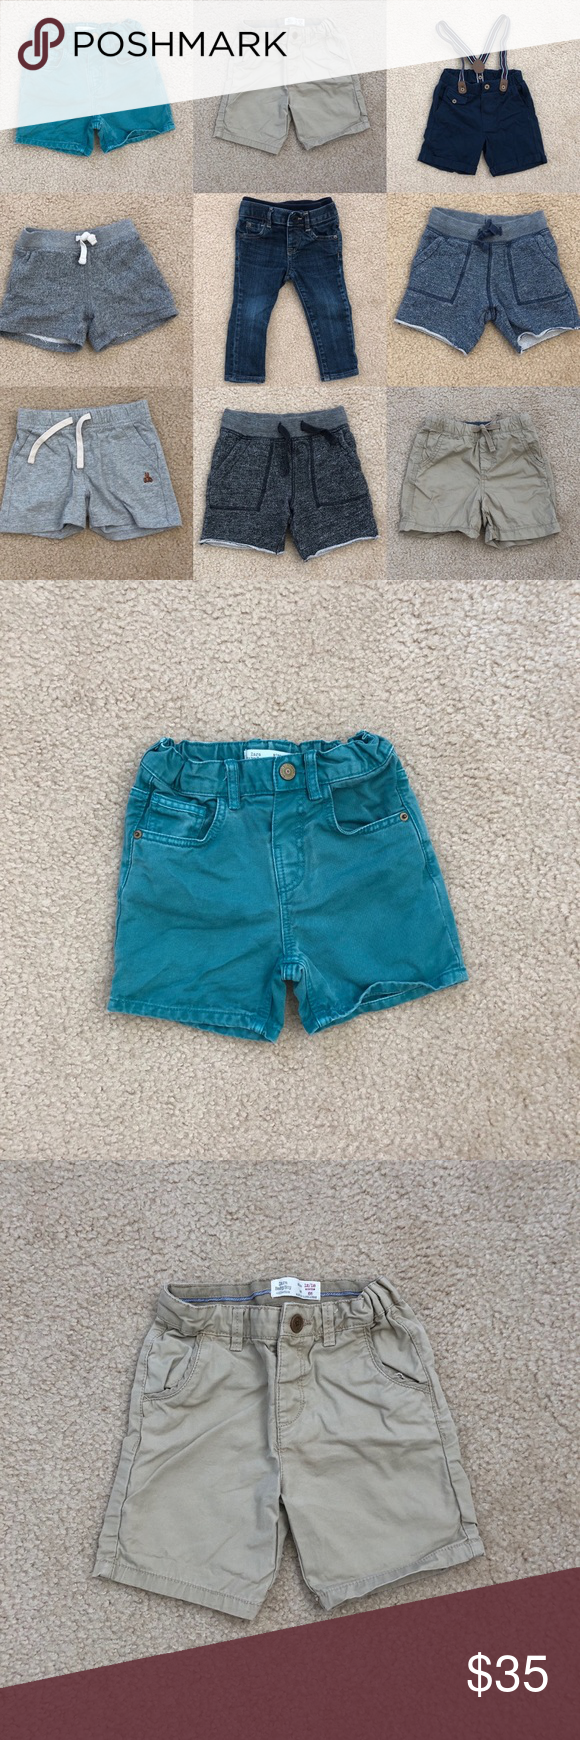 9pc baby boy bottom lot 9pc lot of baby boy bottoms.   First row: Zara, Zara, H&M (shorts w/ suspenders, worn once) Second & Third row: All Baby Gap Denim jeans are skinny fit (my fave pair!)  Comes from a smoke & pet-free home.  All items are in VGUC. No rips or stains. Zara Bottoms Shorts #wfaves